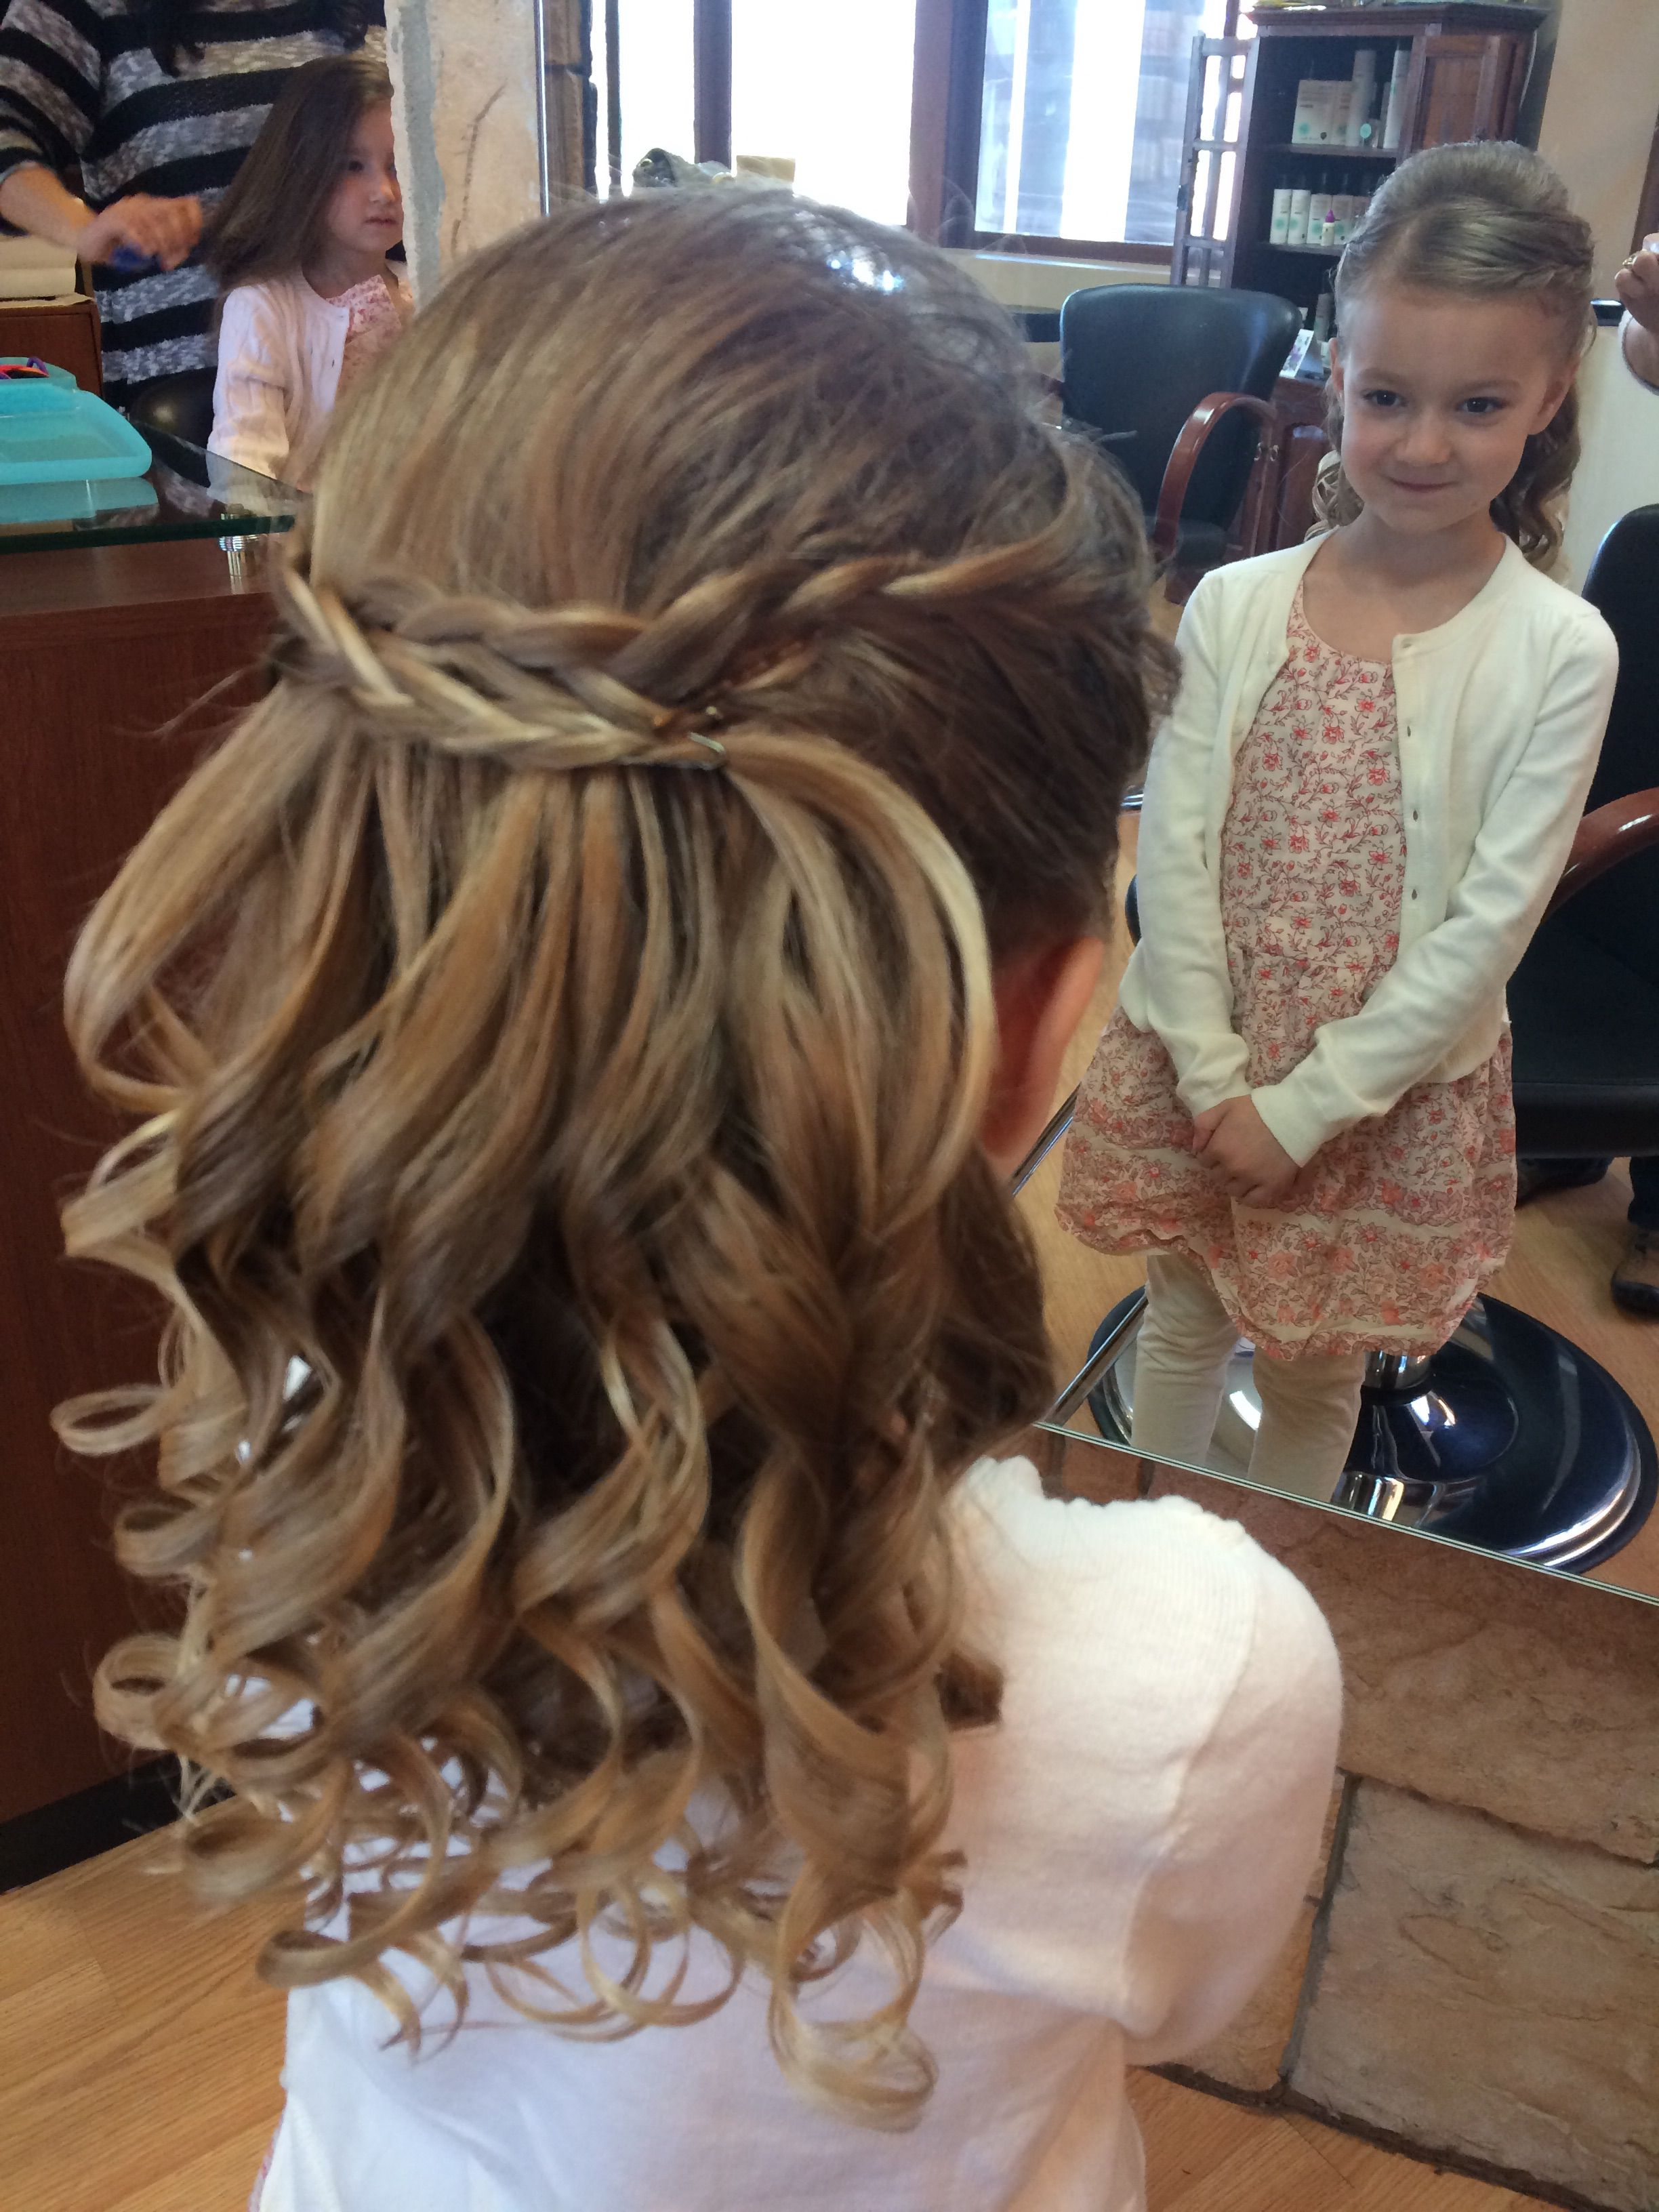 Josie S First Communion Hair She S Pleased Communion Hairstyles First Communion Hairstyles Flower Girl Hairstyles